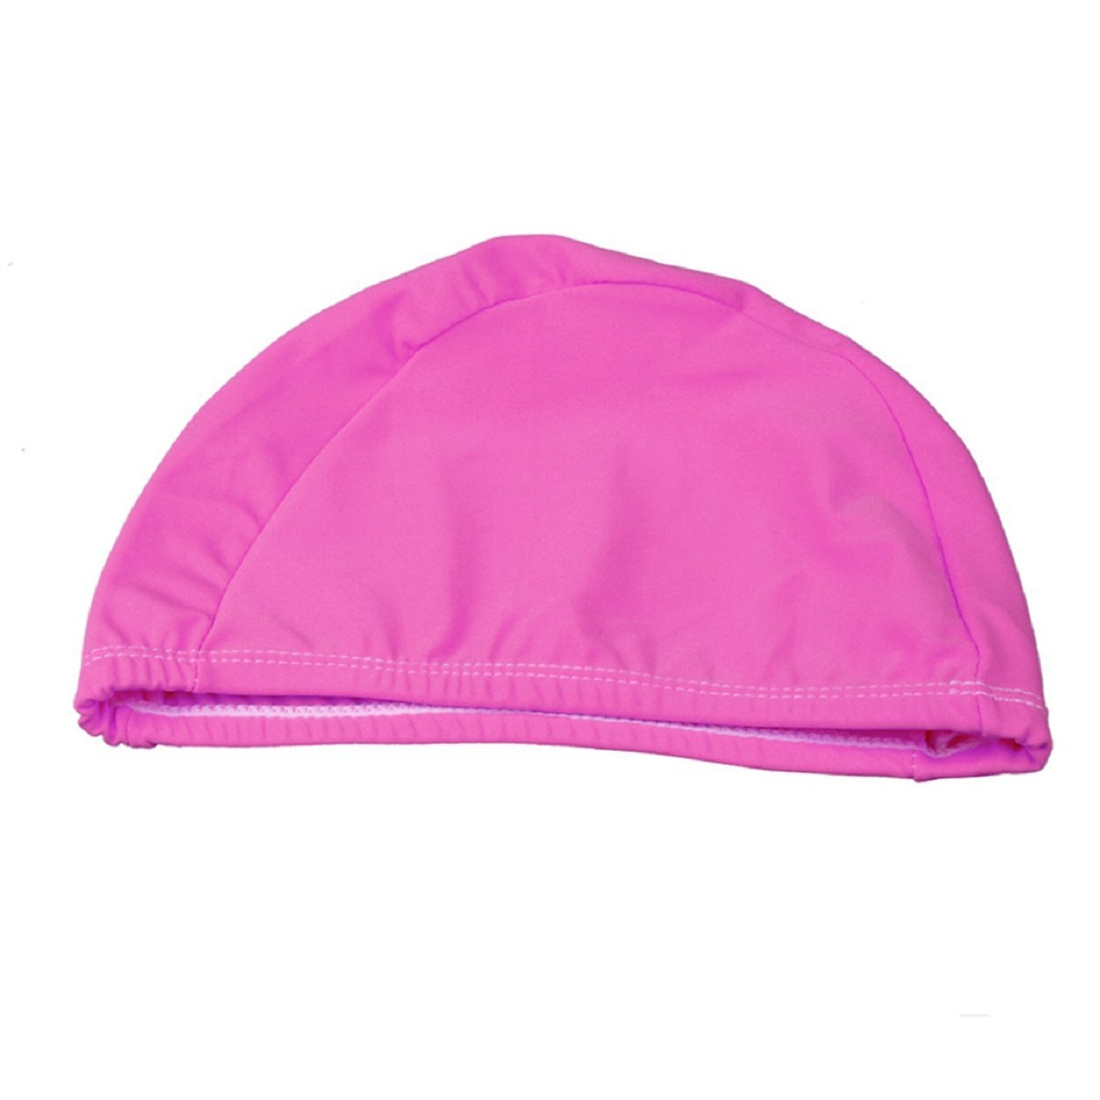 New Sale Adult Swimming Hats Unisex Outdoor Sports Stretch Cap Rose red